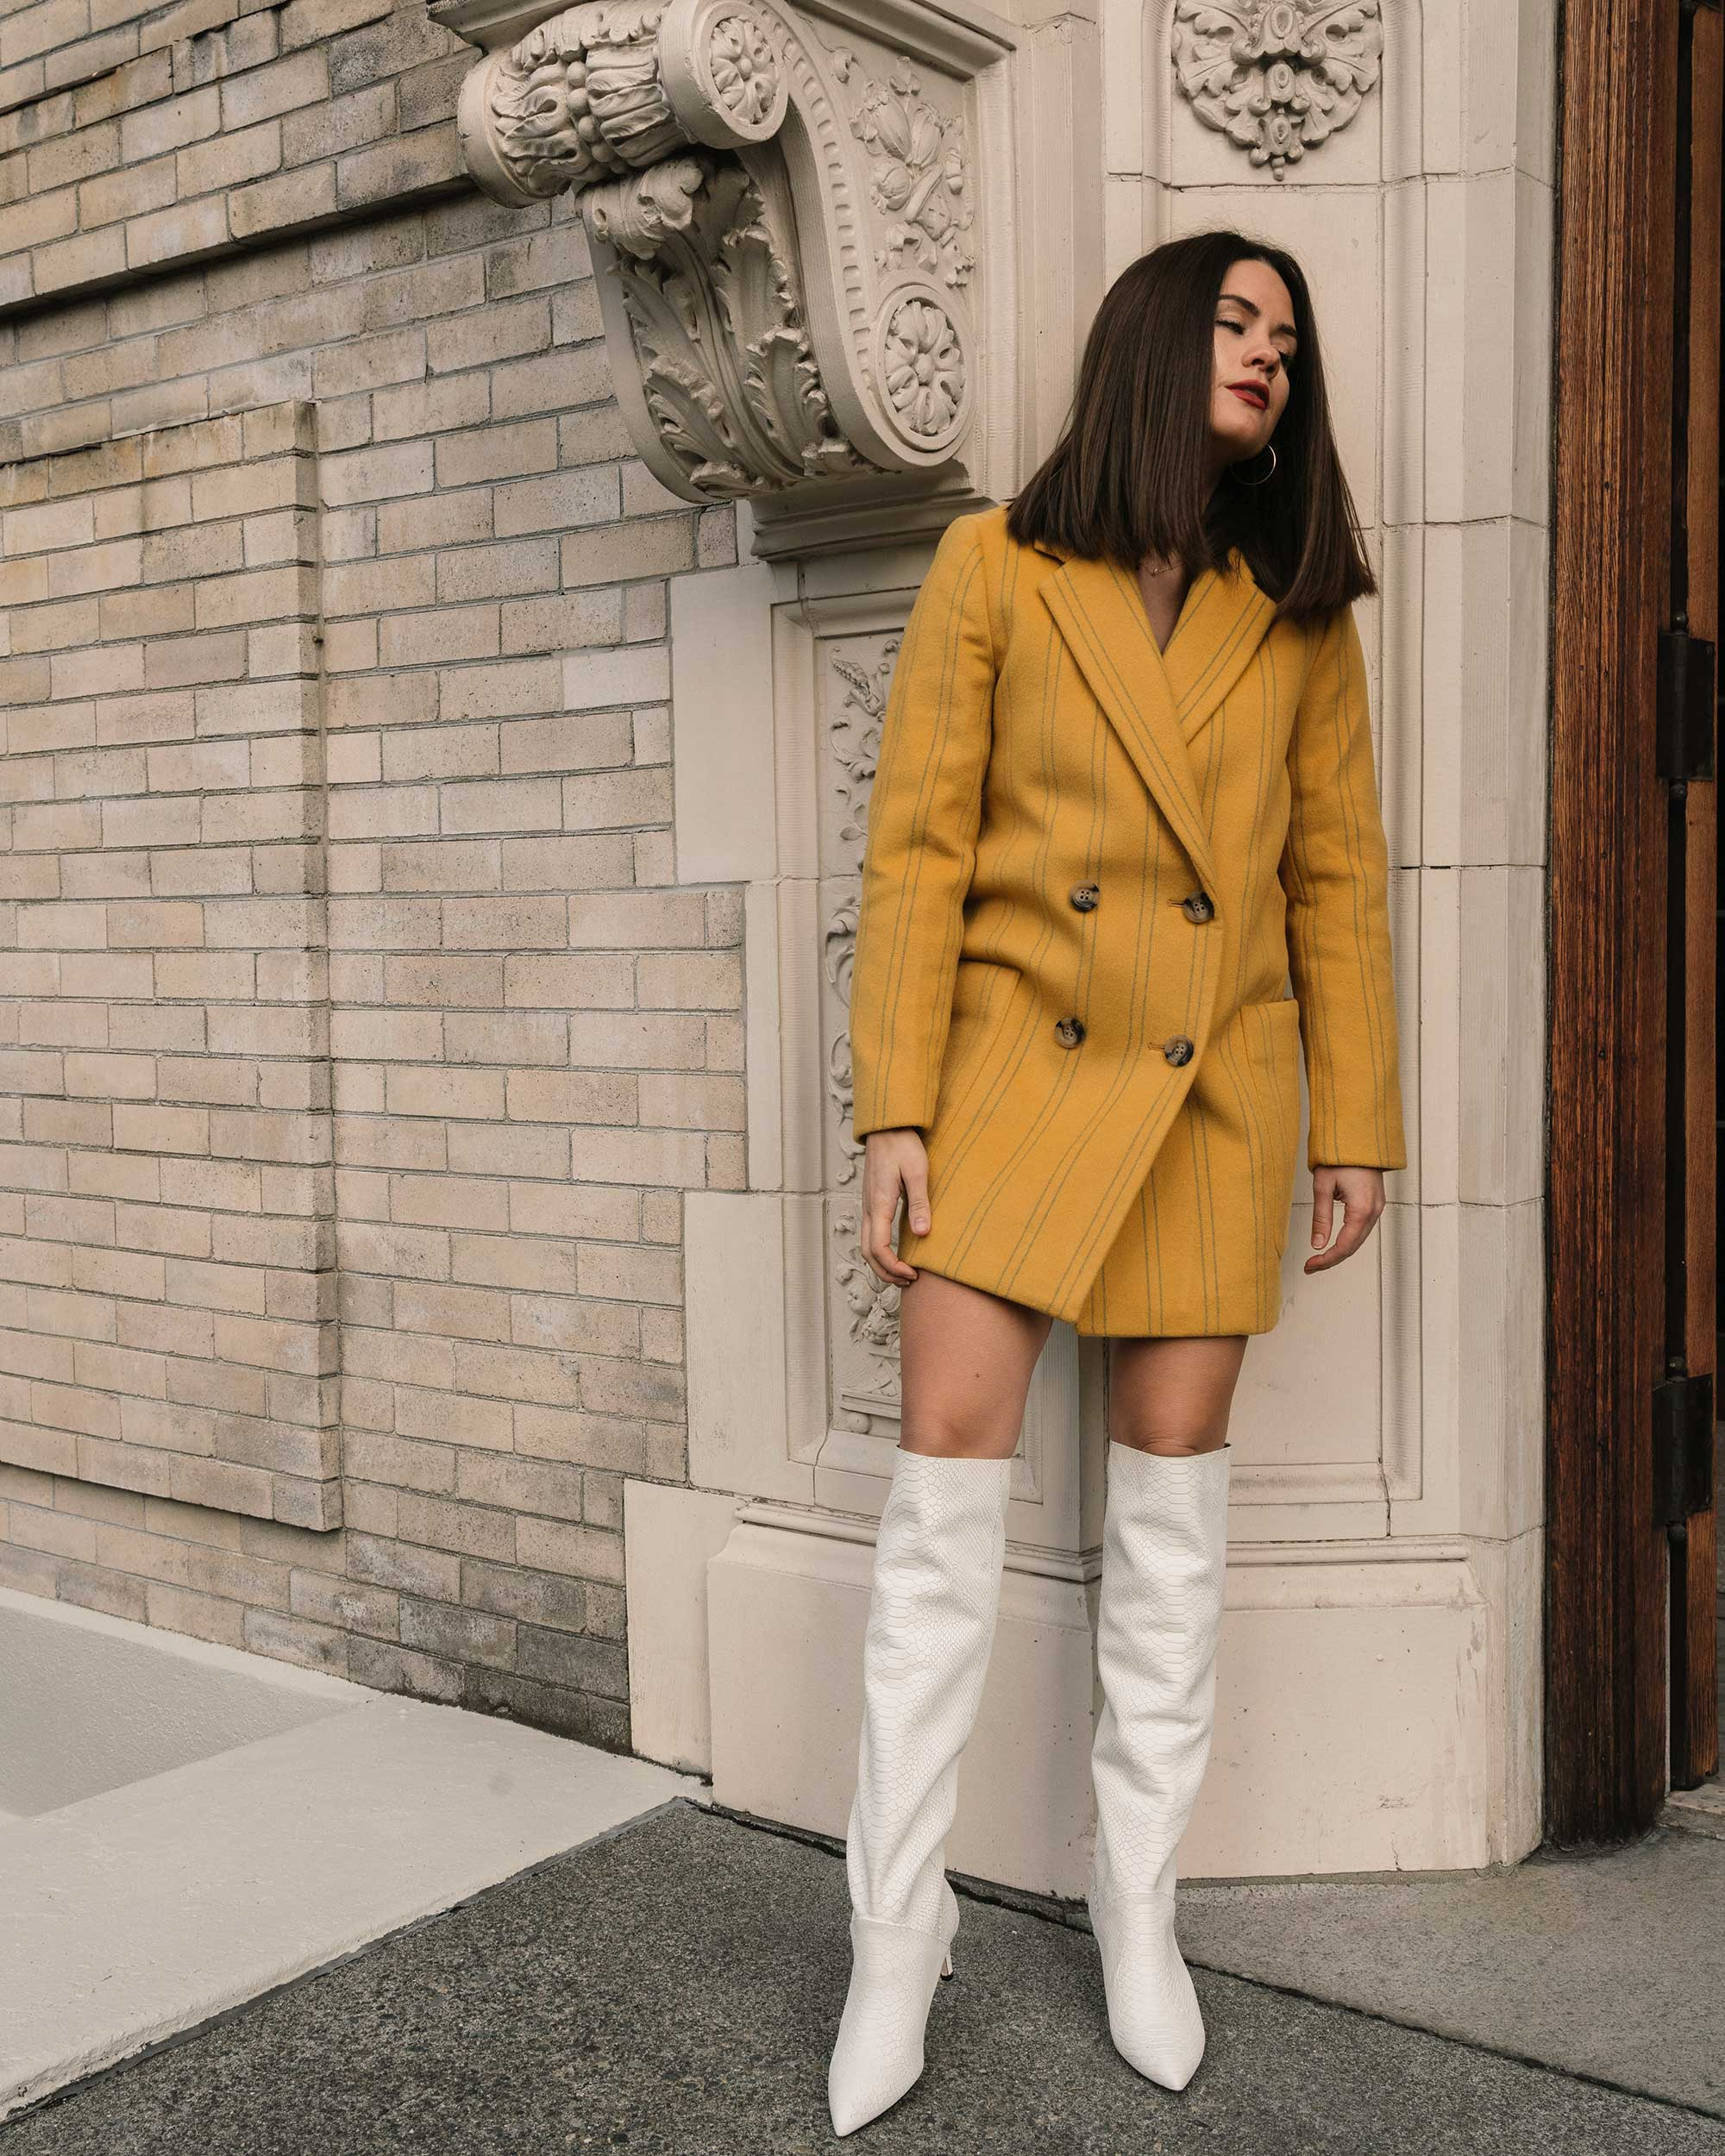 Sarah Butler of Sarah Styles Seattle wears Joie Revet White Snake Print Tall Boots and Madewell Double-Breasted Yellow Coat | @sarahchristine3.jpg